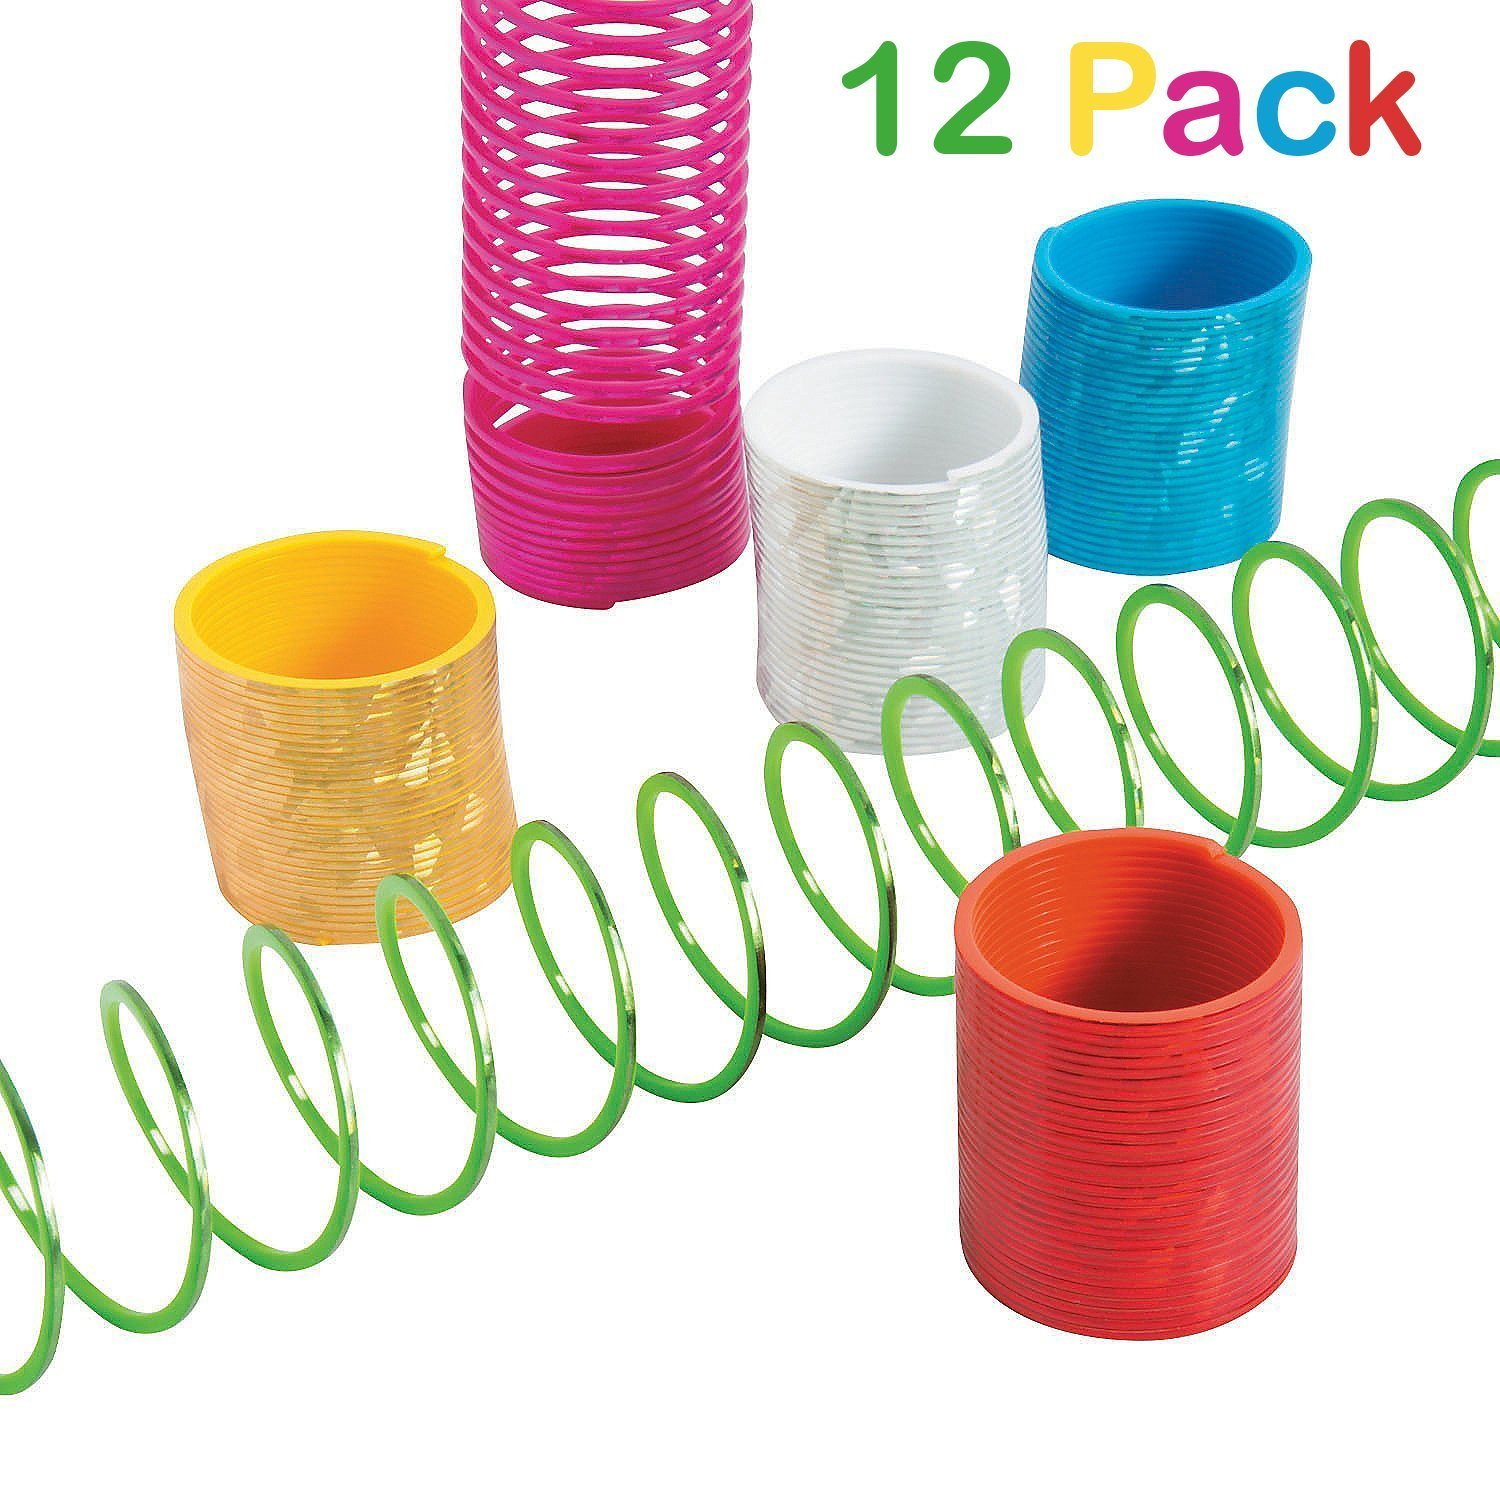 Plastic Mini Prismatic Slinky - Pack Of 12 Assorted Colors Magic Spring